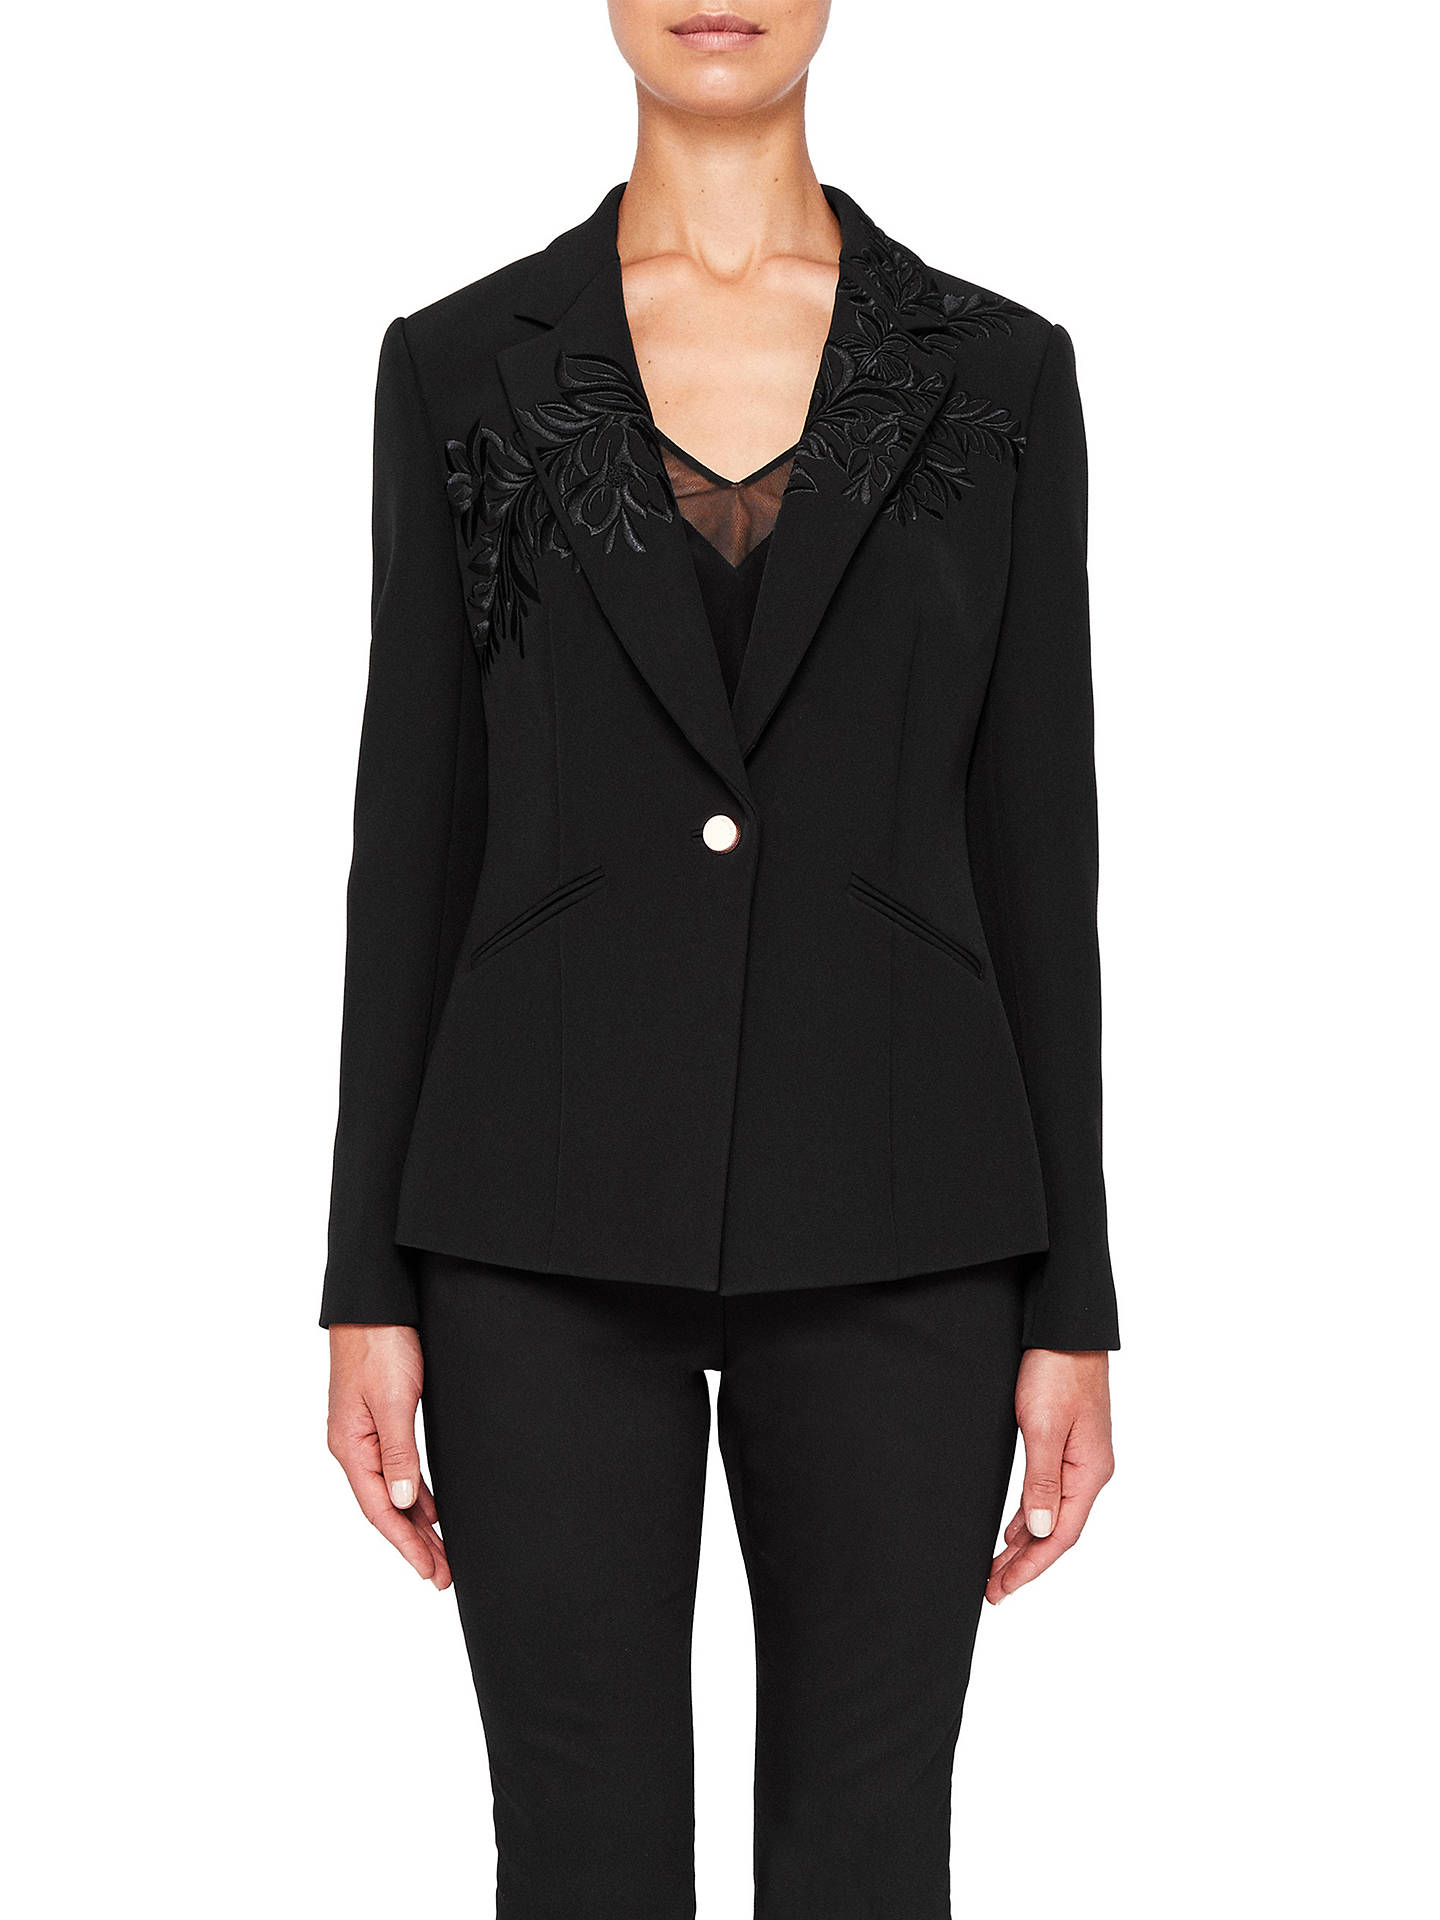 28e0bcc01 Ted Baker Oibia Embroidered Suit Jacket at John Lewis   Partners